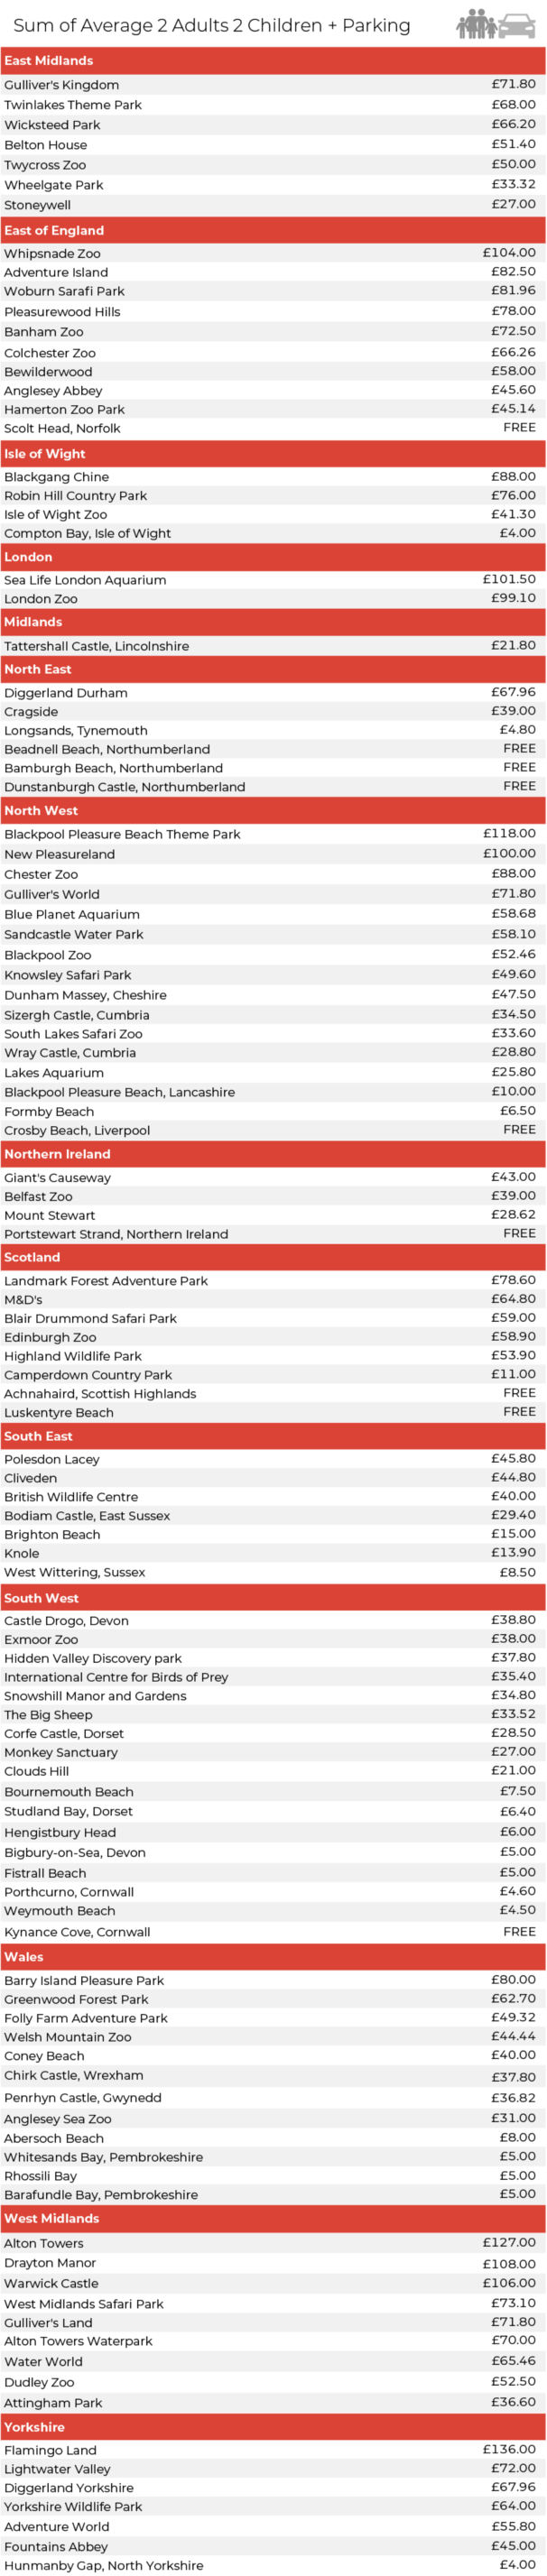 Graphic from Inchape website showing prices of UK tourist attractions